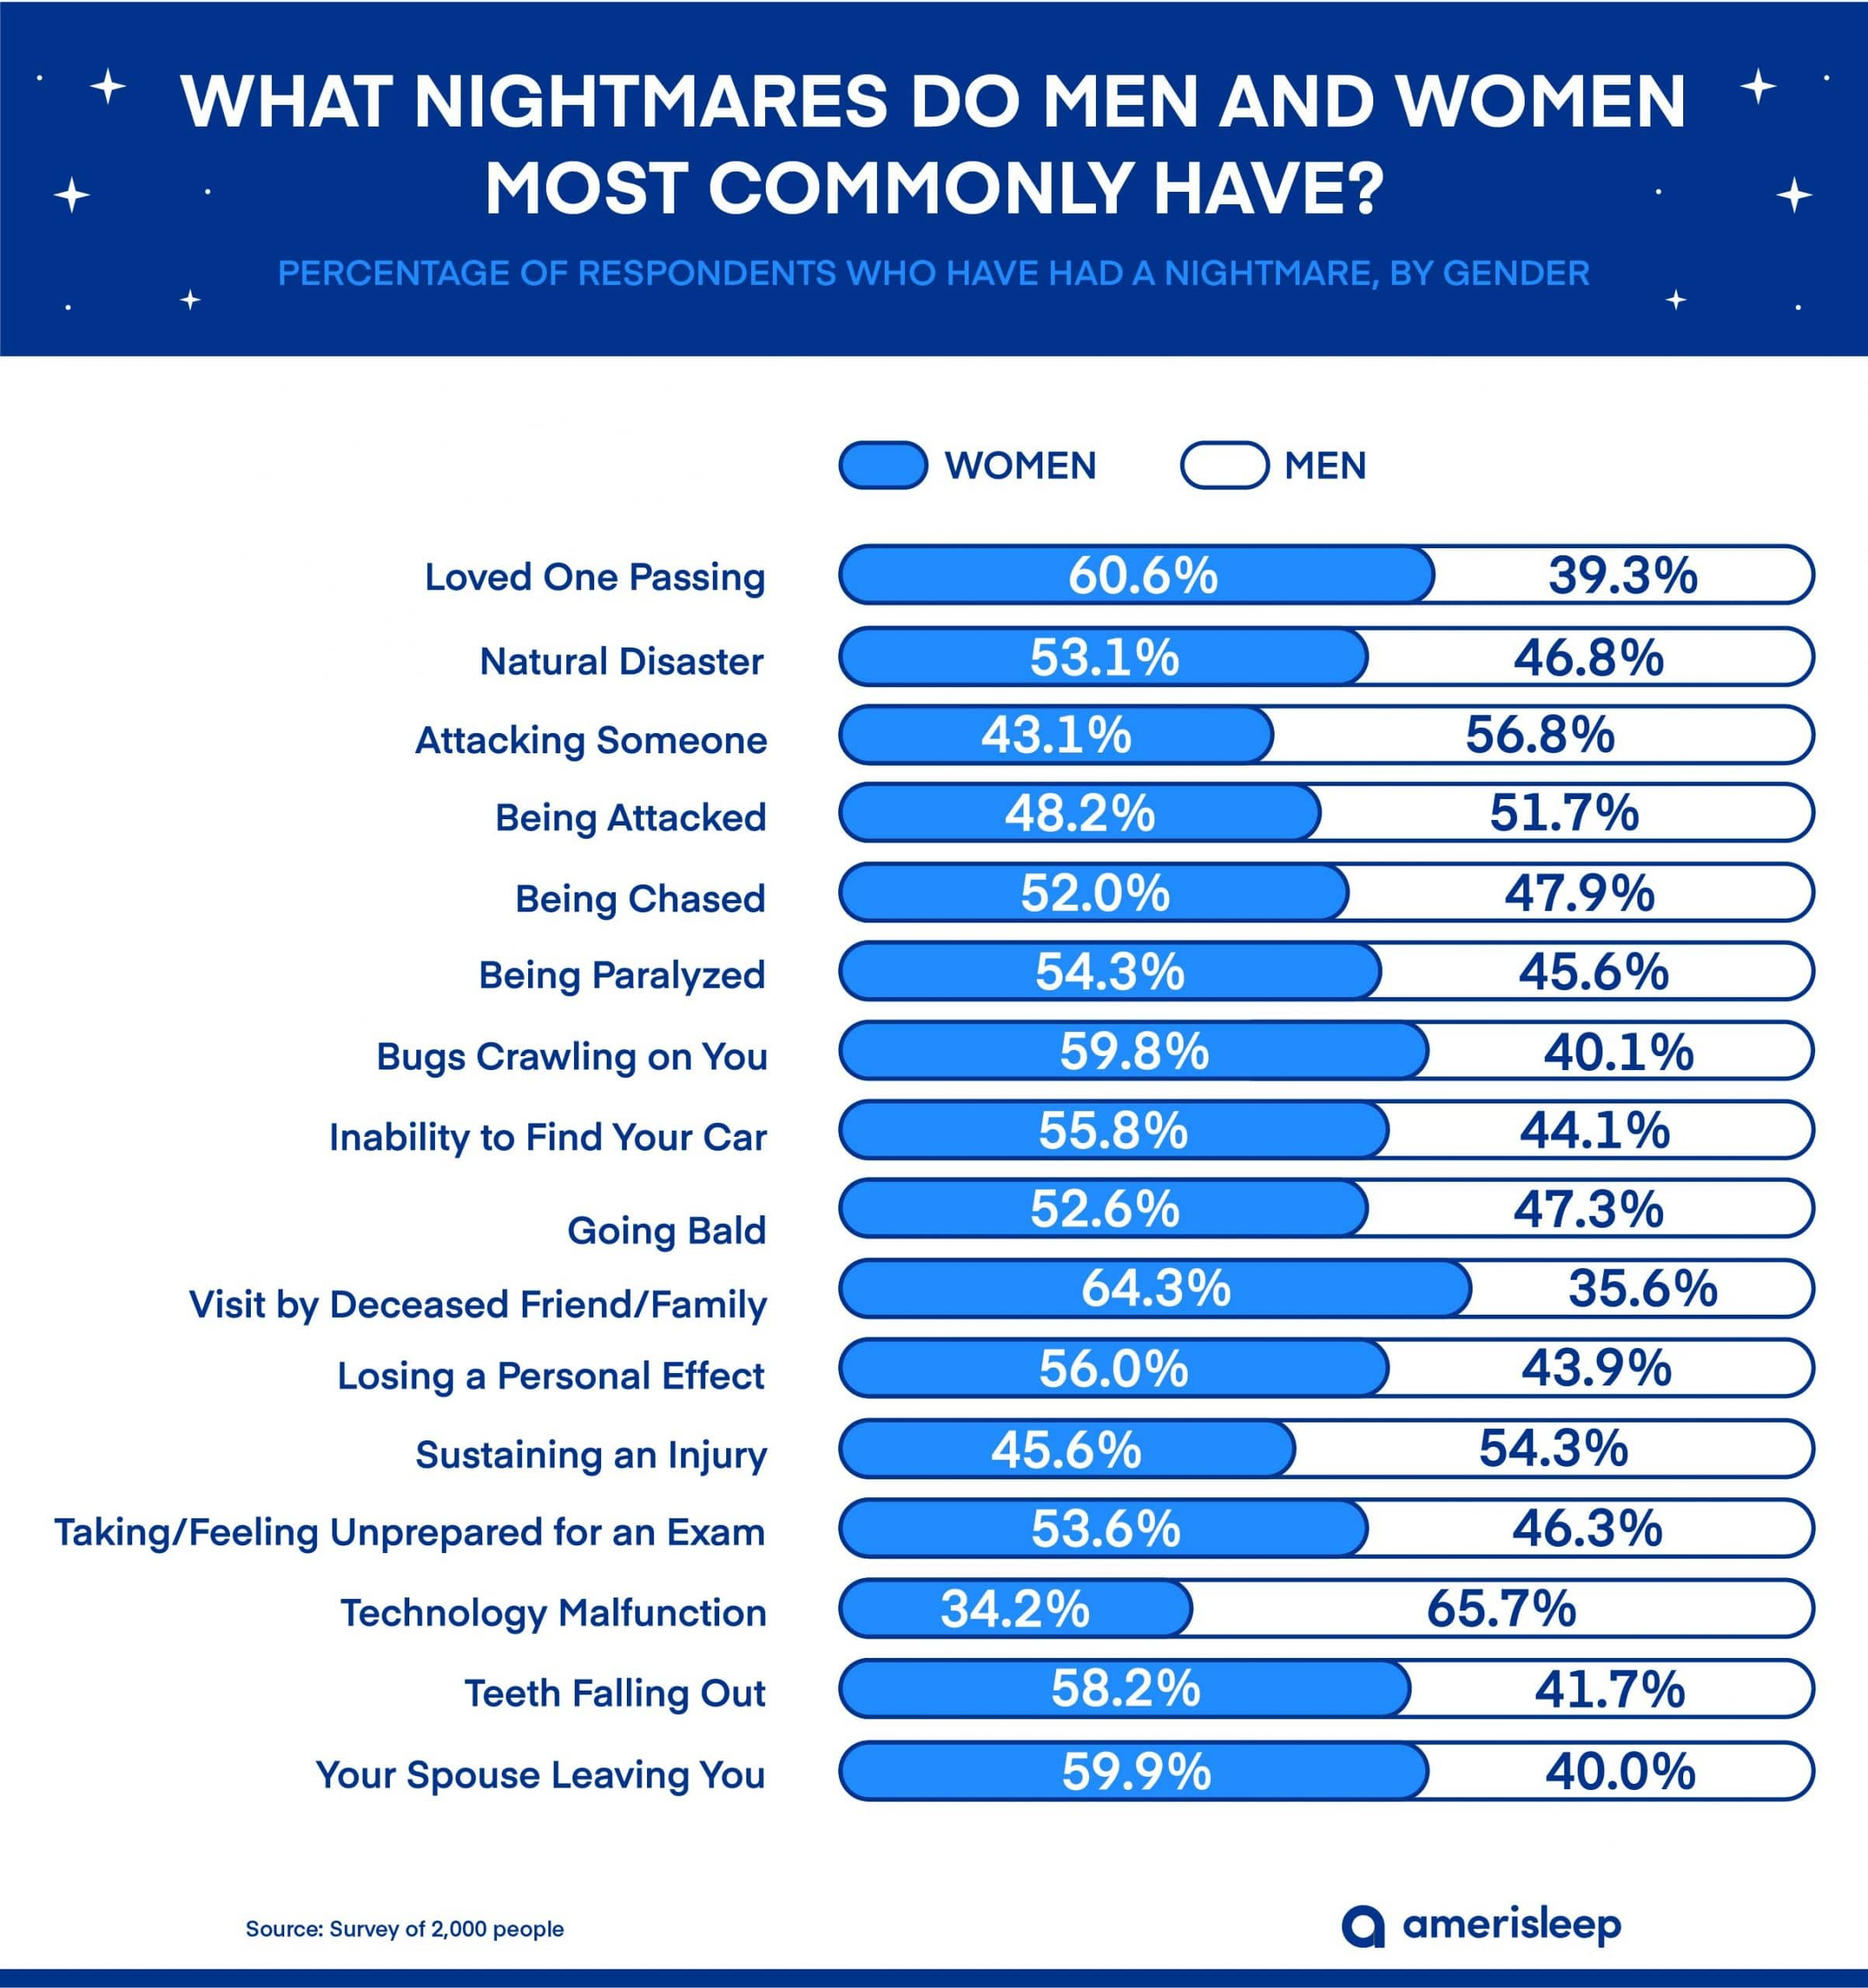 Most Common Nightmares by Gender